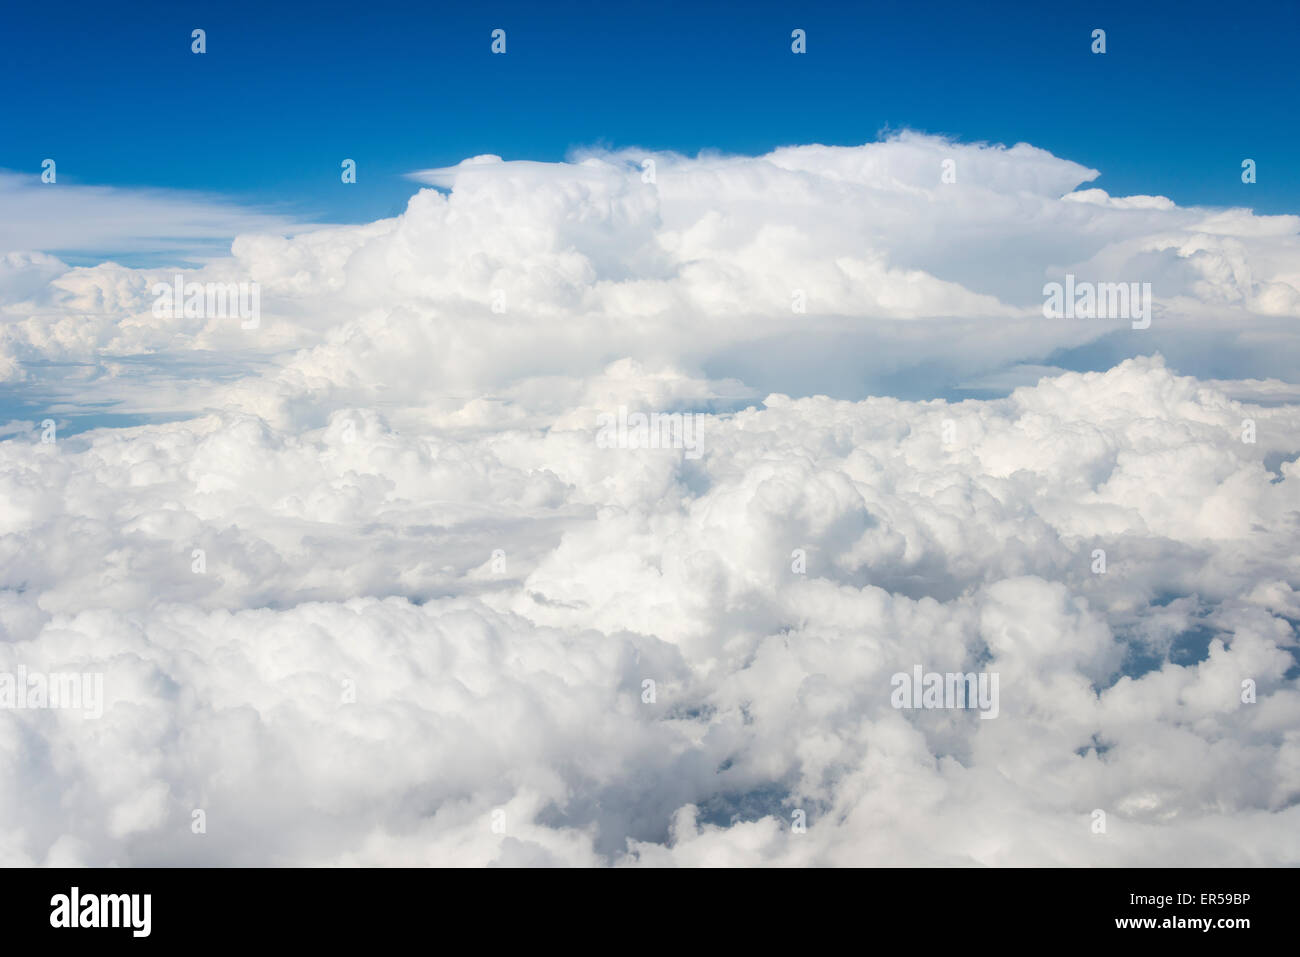 View of cloud formations from aircraft, Republic of South Africa Stock Photo